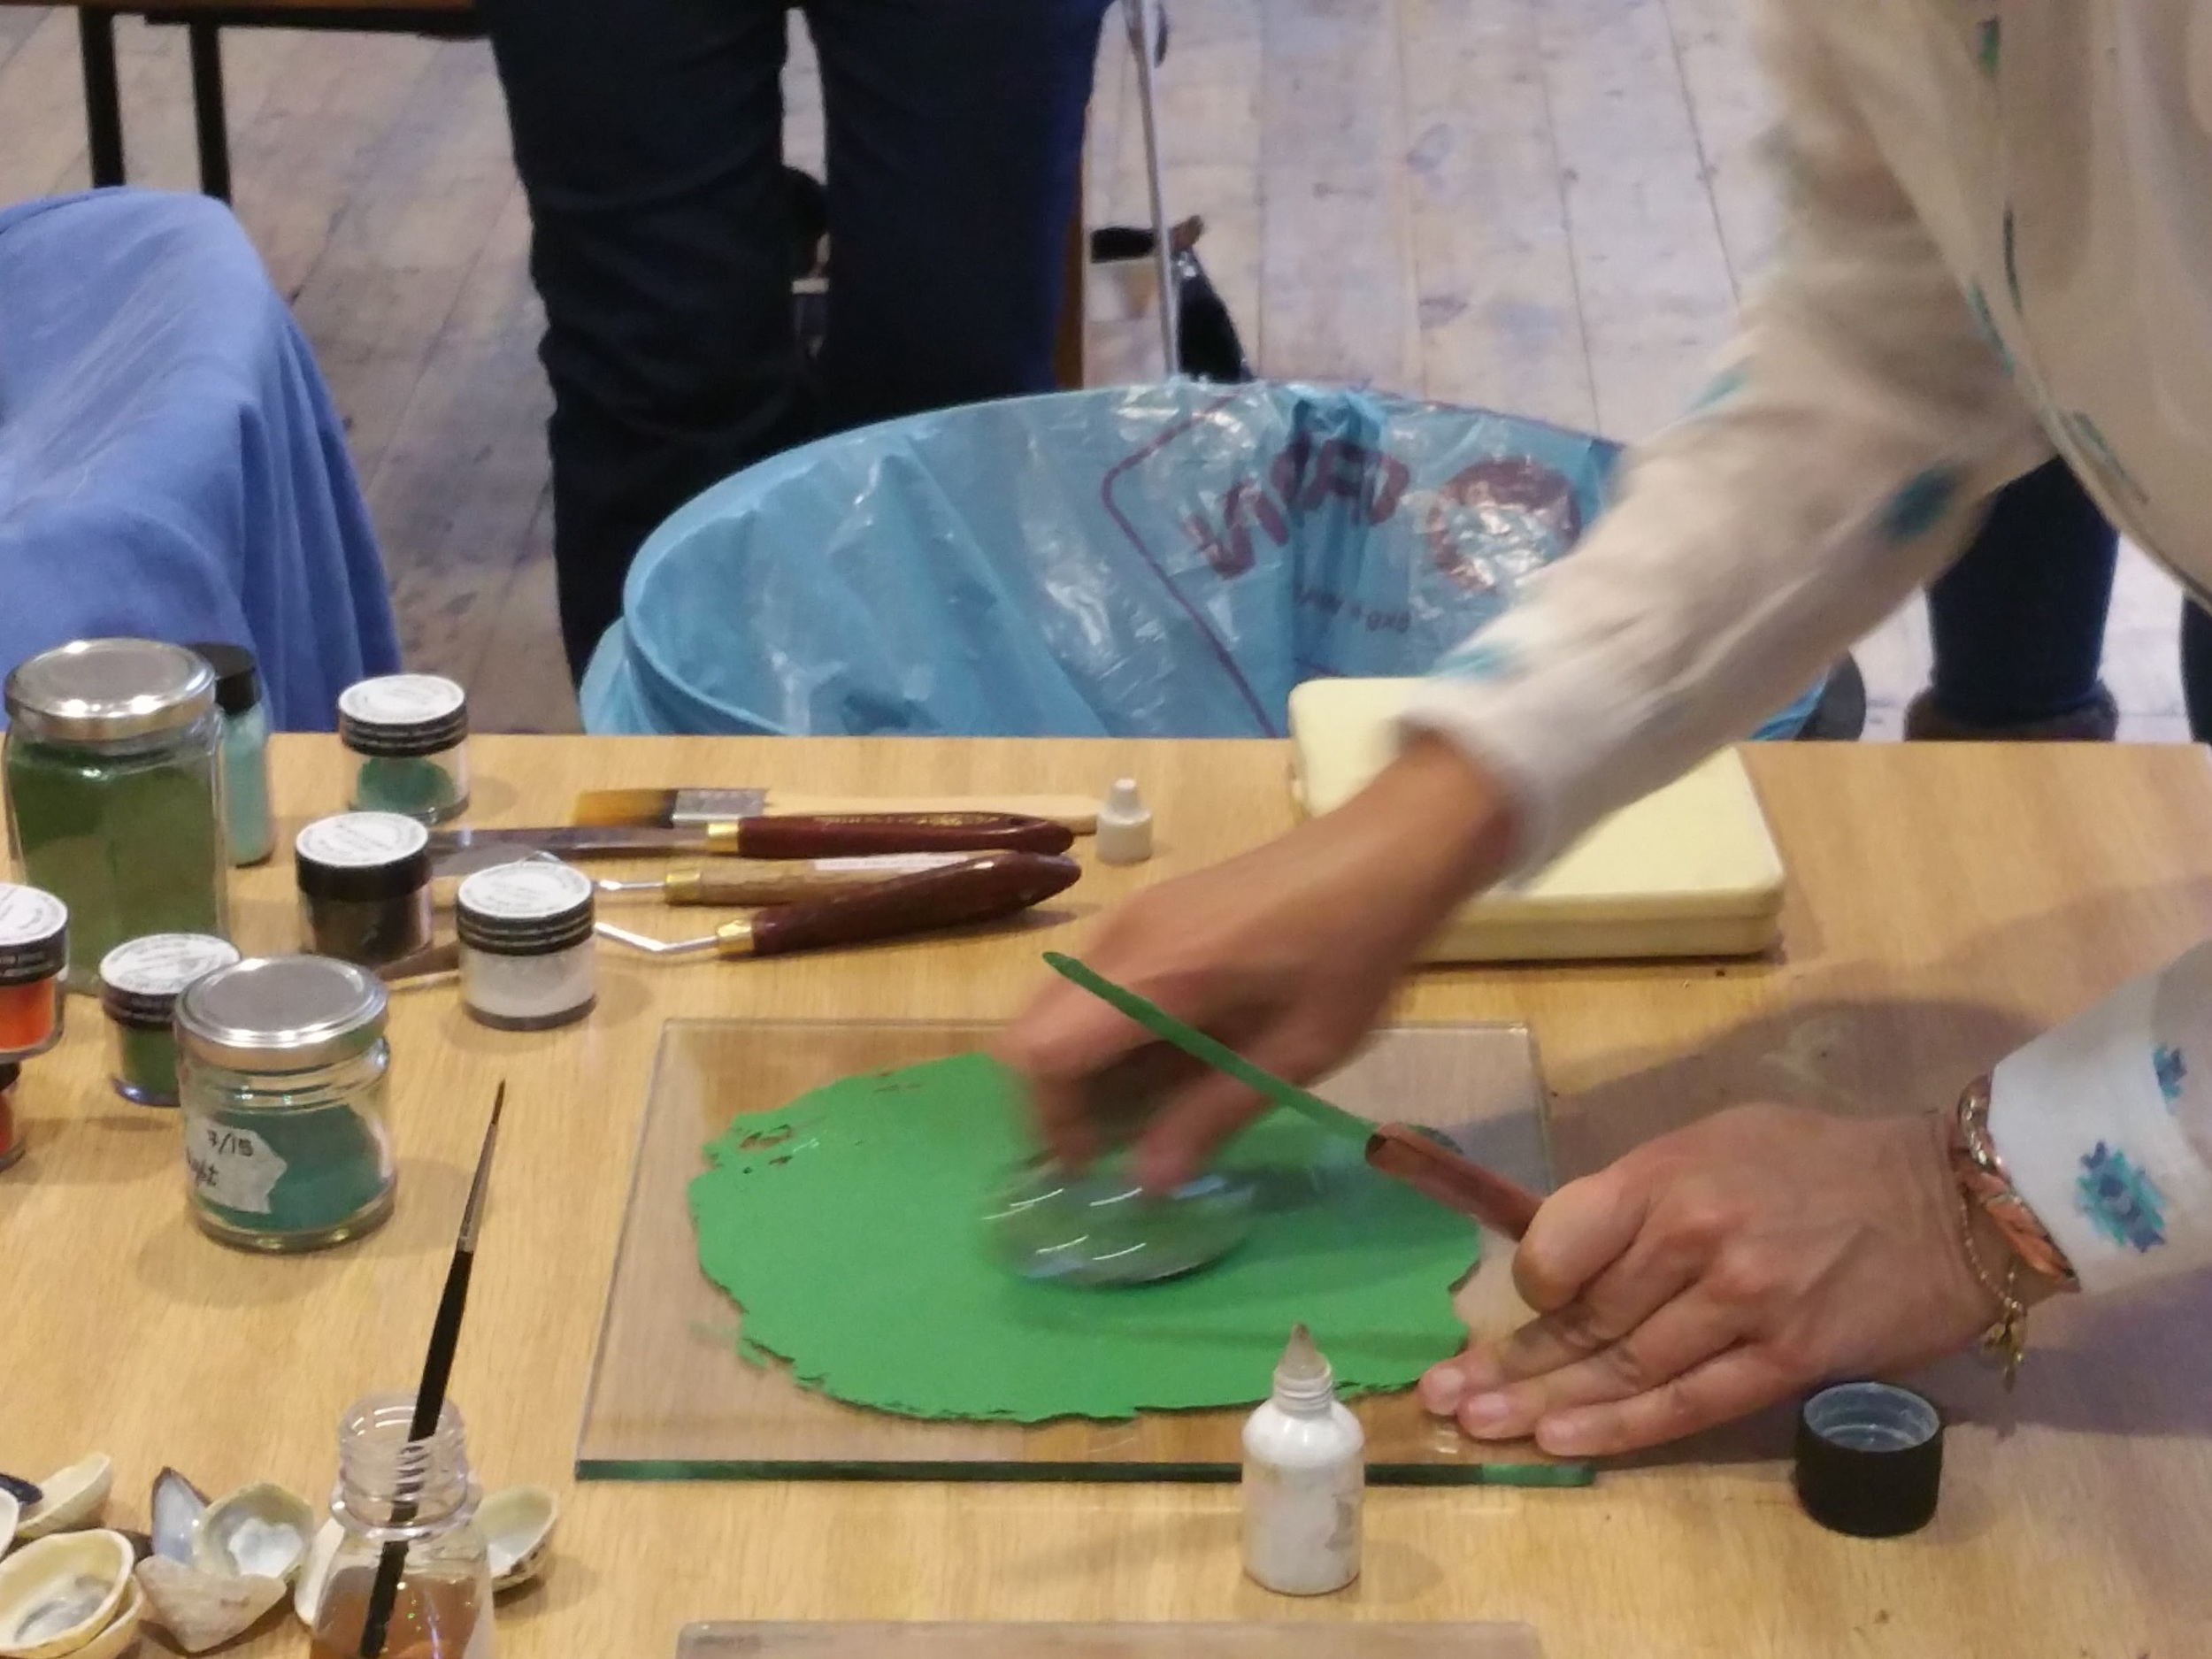 Grinding and mixing the pigment with a muller on a glass slab